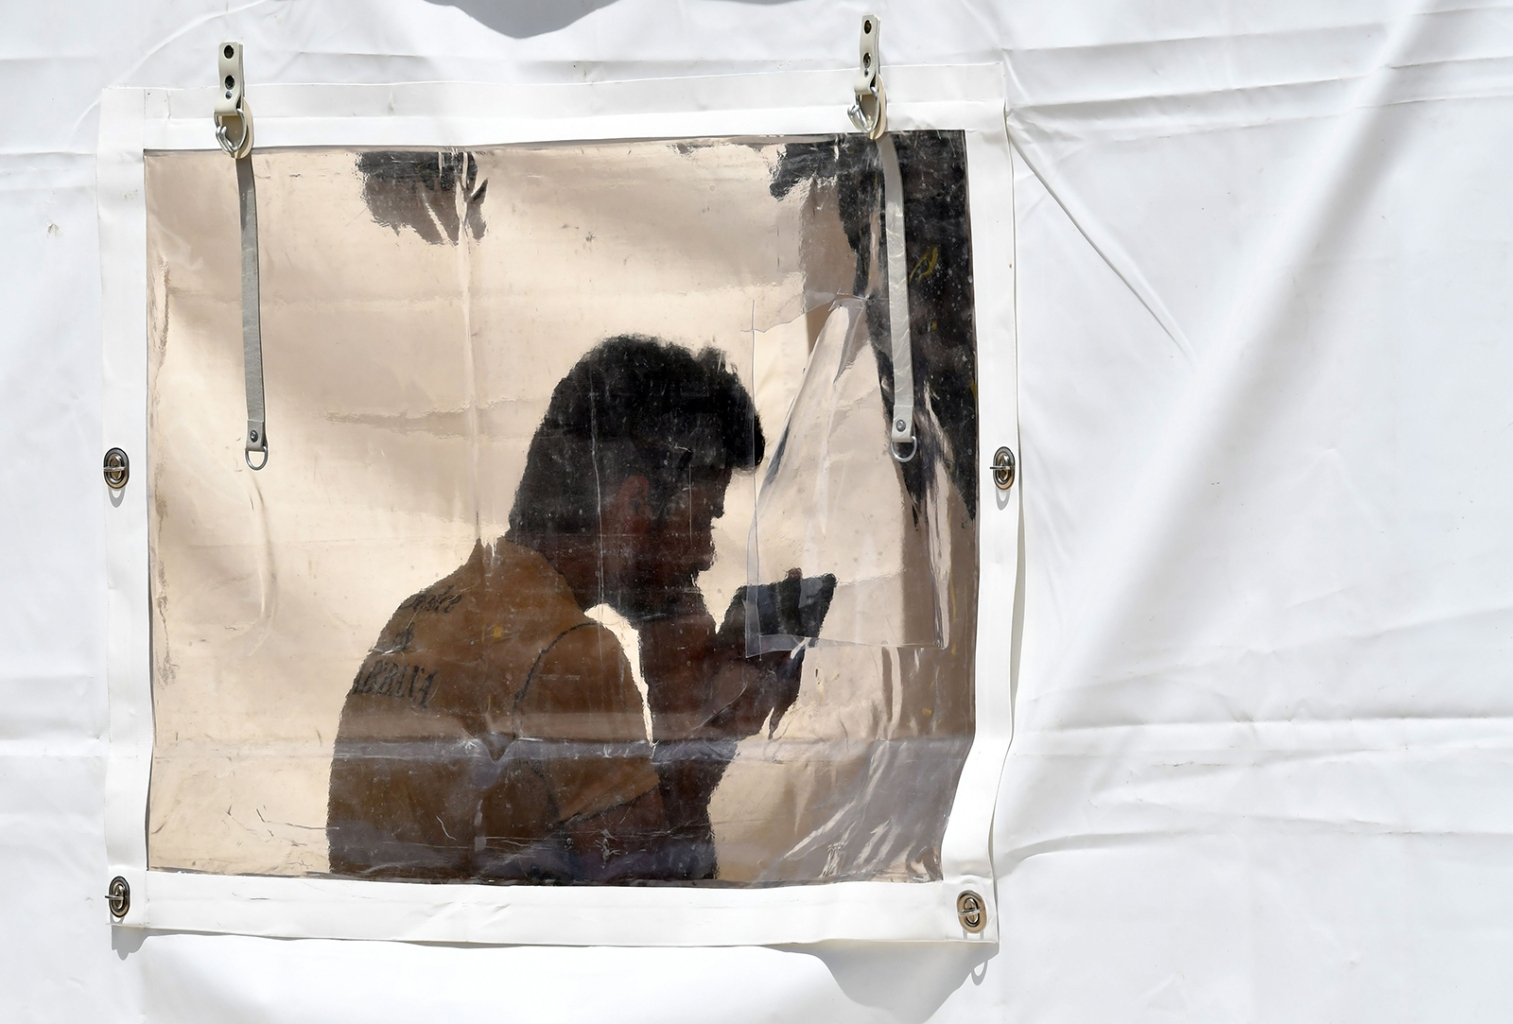 An illegal migrant attempts to contact family on his cell phone as he stands inside a tent at the Vucjak camp on the outskirts of Bihac in northern Bosnia on June 16. ELVIS BARUKCIC/AFP/Getty Images